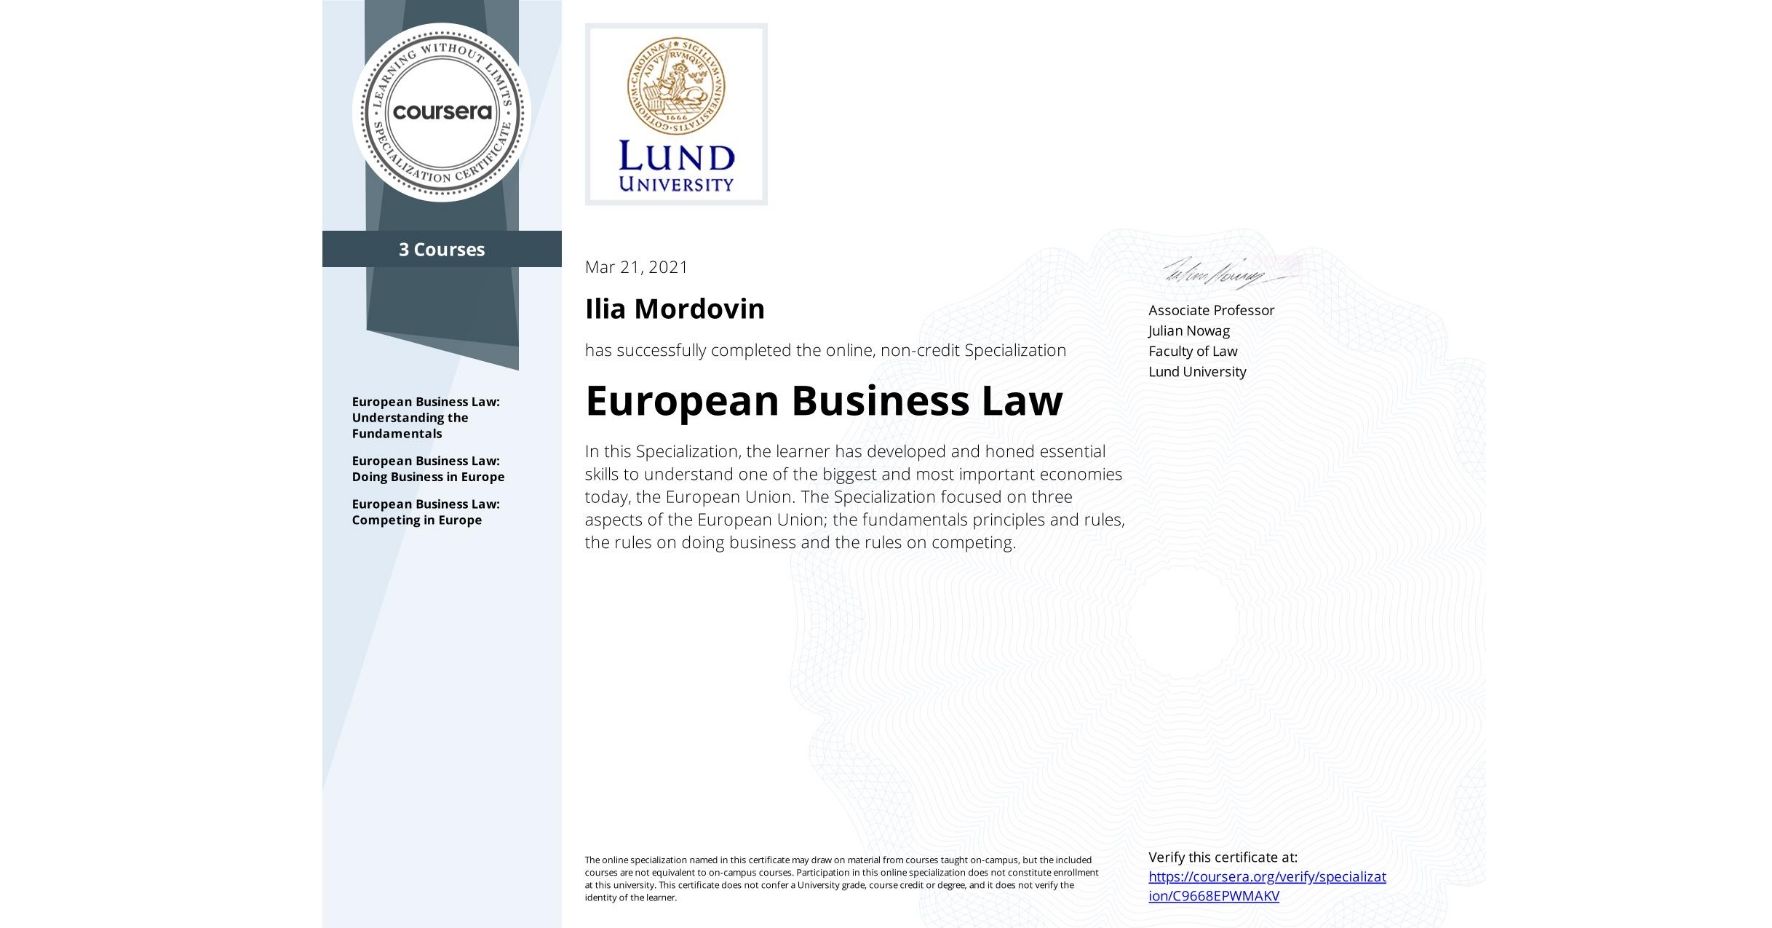 Смотреть сертификат учащегося Ilia Mordovin, European Business Law , за онлайн-курс, предлагаемый на Coursera. In this Specialization, the learner has developed and honed essential skills to understand one of the biggest and most important economies today, the European Union. The Specialization focused on three aspects of the European Union; the fundamentals principles and rules, the rules on doing business and the rules on competing.